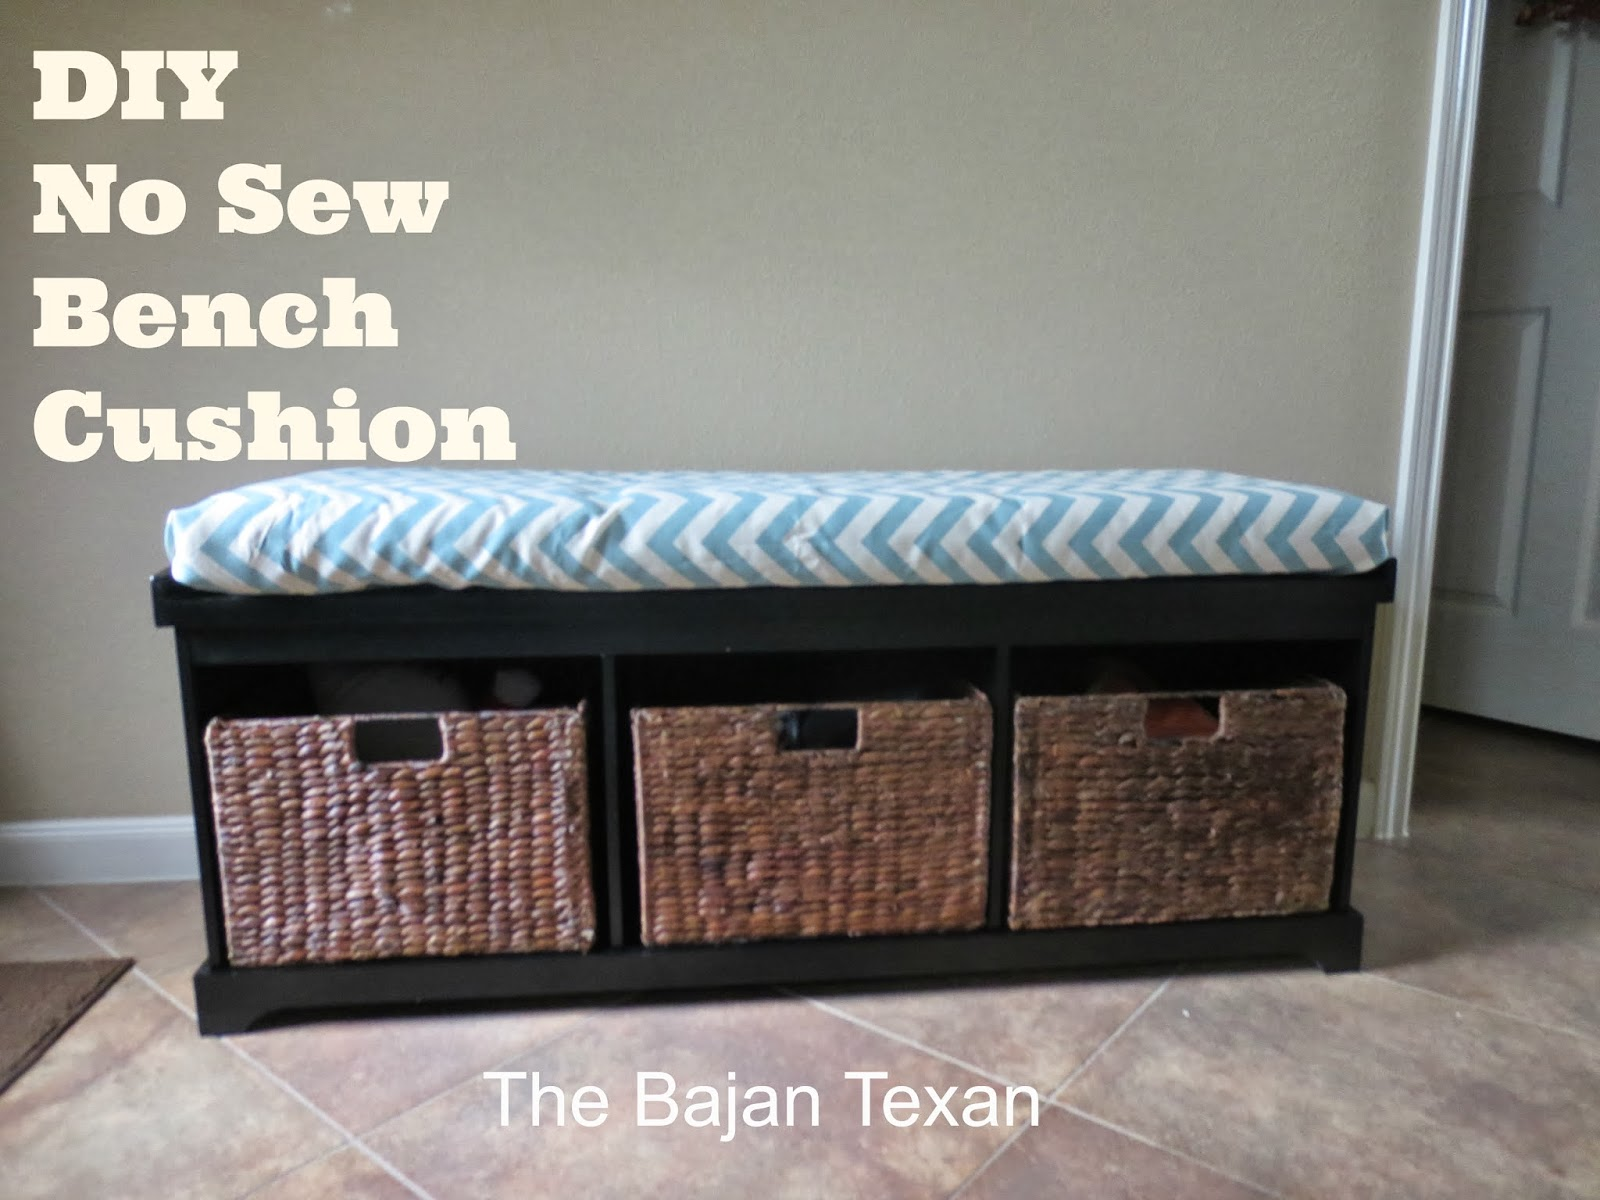 diy chair cushion no sew office support bench or window seat  the bajan texan